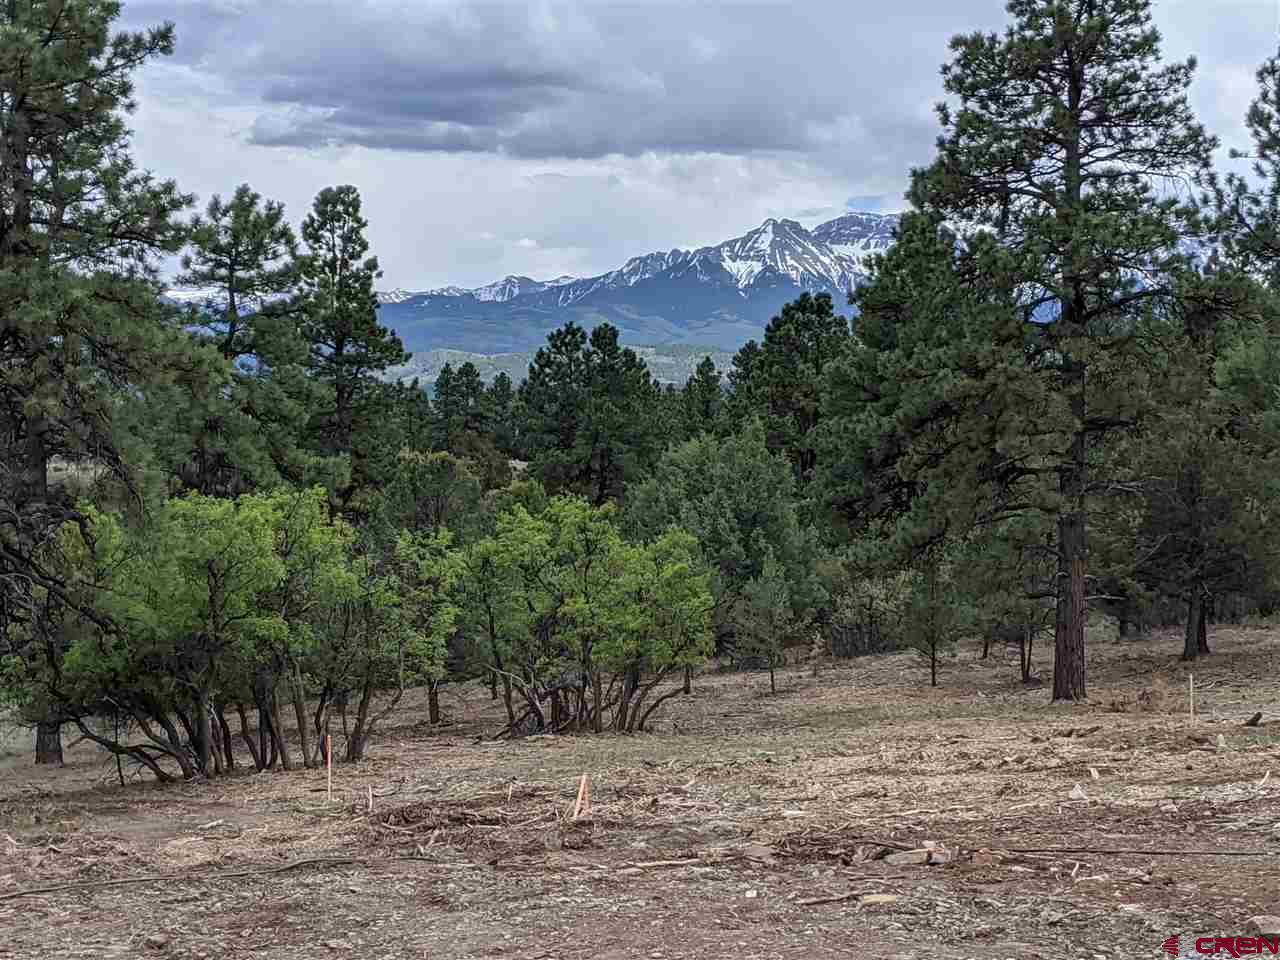 * One lot remaining with great views! * Four house plans to choose from * Square Footage begins at approx. 2200 sq.ft and up * Pricing begins at $617,840 ( this is for a main level of 1279 sq. ft plus upstairs 1 BR/1Bath+ bonus room)   * $658,300 - main level of 1279+ finished walk-out basement * Can build both walk-out and upstairs for 3 levels  Call for pricing matrix.  Just what you have been waiting for! Top quality construction in the Divide Ranch Golf Community in Log Hill, Near Ridgway Colorado. There are 4 house plans to choose from, each with different pricing and square footage.  There is an option for walk out basement instead of two story.  The Homes are finished with Granite or Quartz counter tops throughout, Partial Carpet and Vinyl Plank Flooring and Tile.  Stainless appliances including Refrigerator, Range/oven, Microwave, disposal and Dishwasher.  Exterior is Stucco/Stone.  There are a total of four units in this Planned Unit Development in The Divide Golf Community.  They have shared driveways between 2 homes.  Each Home has its own septic and it is Dallas Creek Water.    There are excellent Mountain views and some views of the golf course.  There is a golf Membership included with a transfer fee paid by the Buyer of $3,000 at closing.  The homes are completed within 7 months of Permit being issued.  Located is 10 min from Ridgway, 20 min to Ouray and The Hot springs, and 45 min to World class Skiing in Telluride and you can enjoy the Summer Season in all of the same areas. Live and Play all year round living in the heart of the San Juan Mountains.